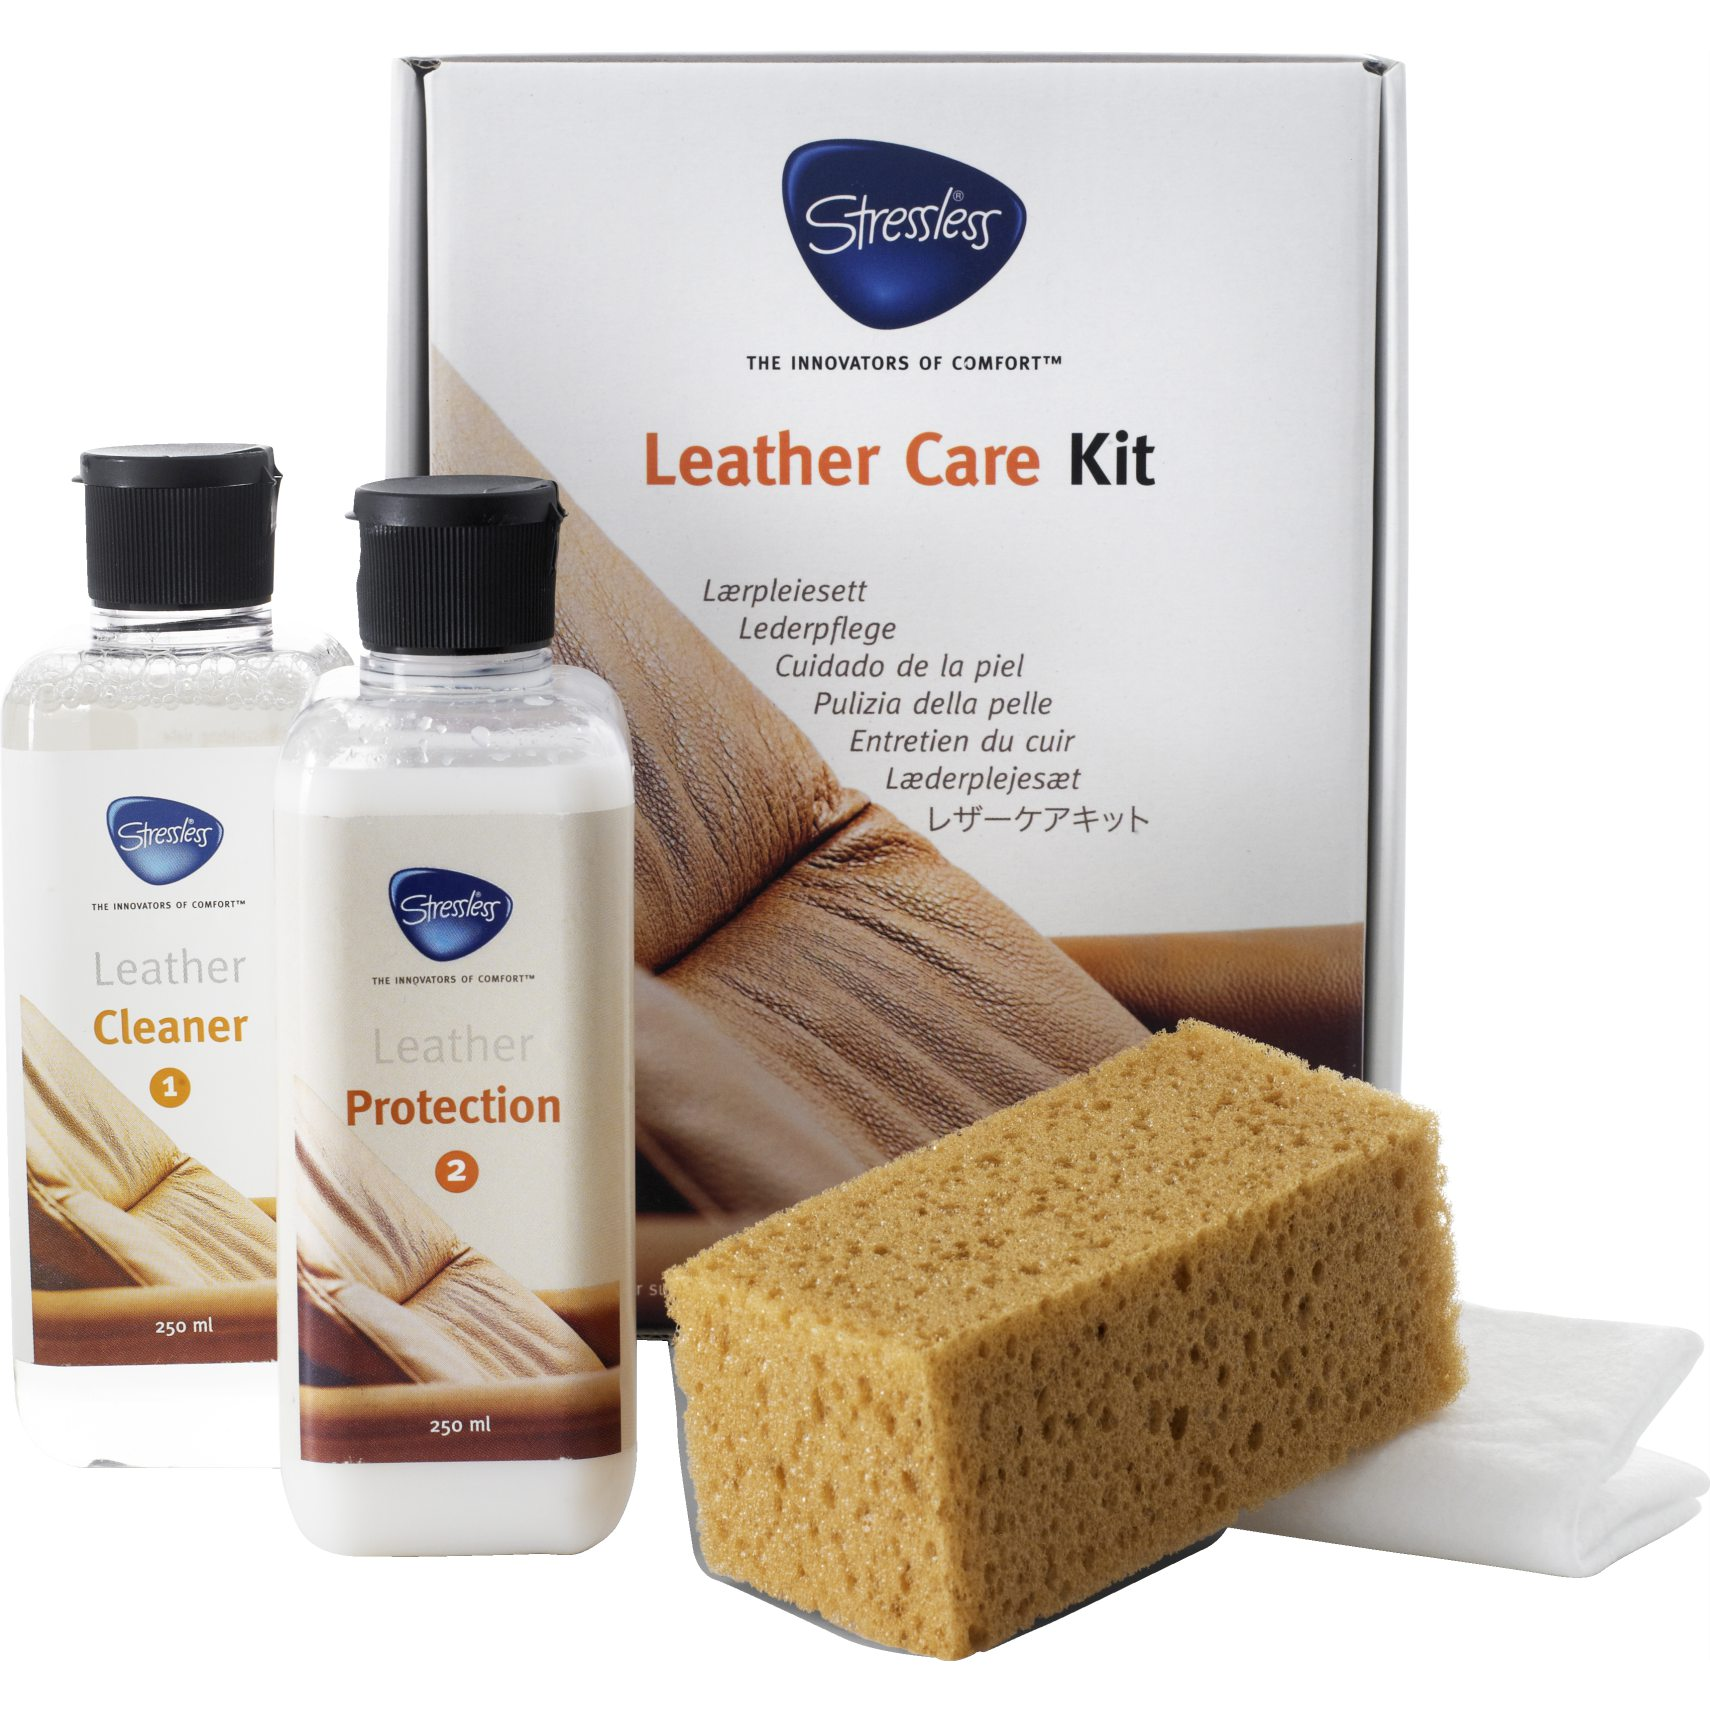 Stressless Lädervårdsset - Leather care kit och 250 milliliter